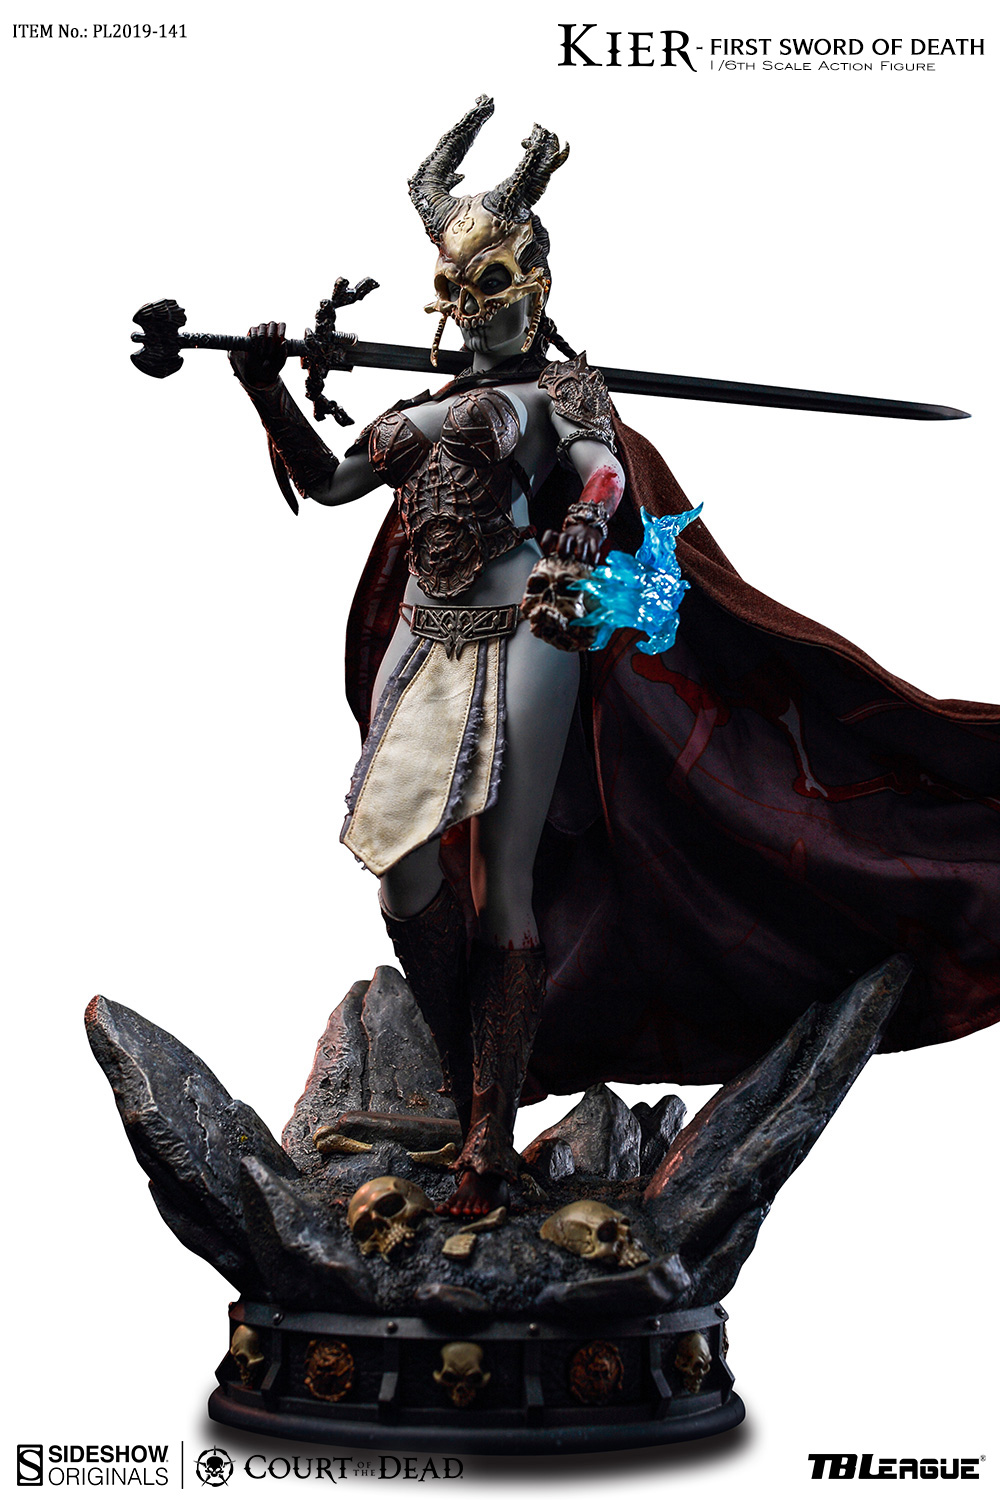 tbleague - NEW PRODUCT: TBLeague & Sideshow: 1/6 Court of the Dead - Valkyrie Cole / Kier movable doll (PL2019-141) 16261311